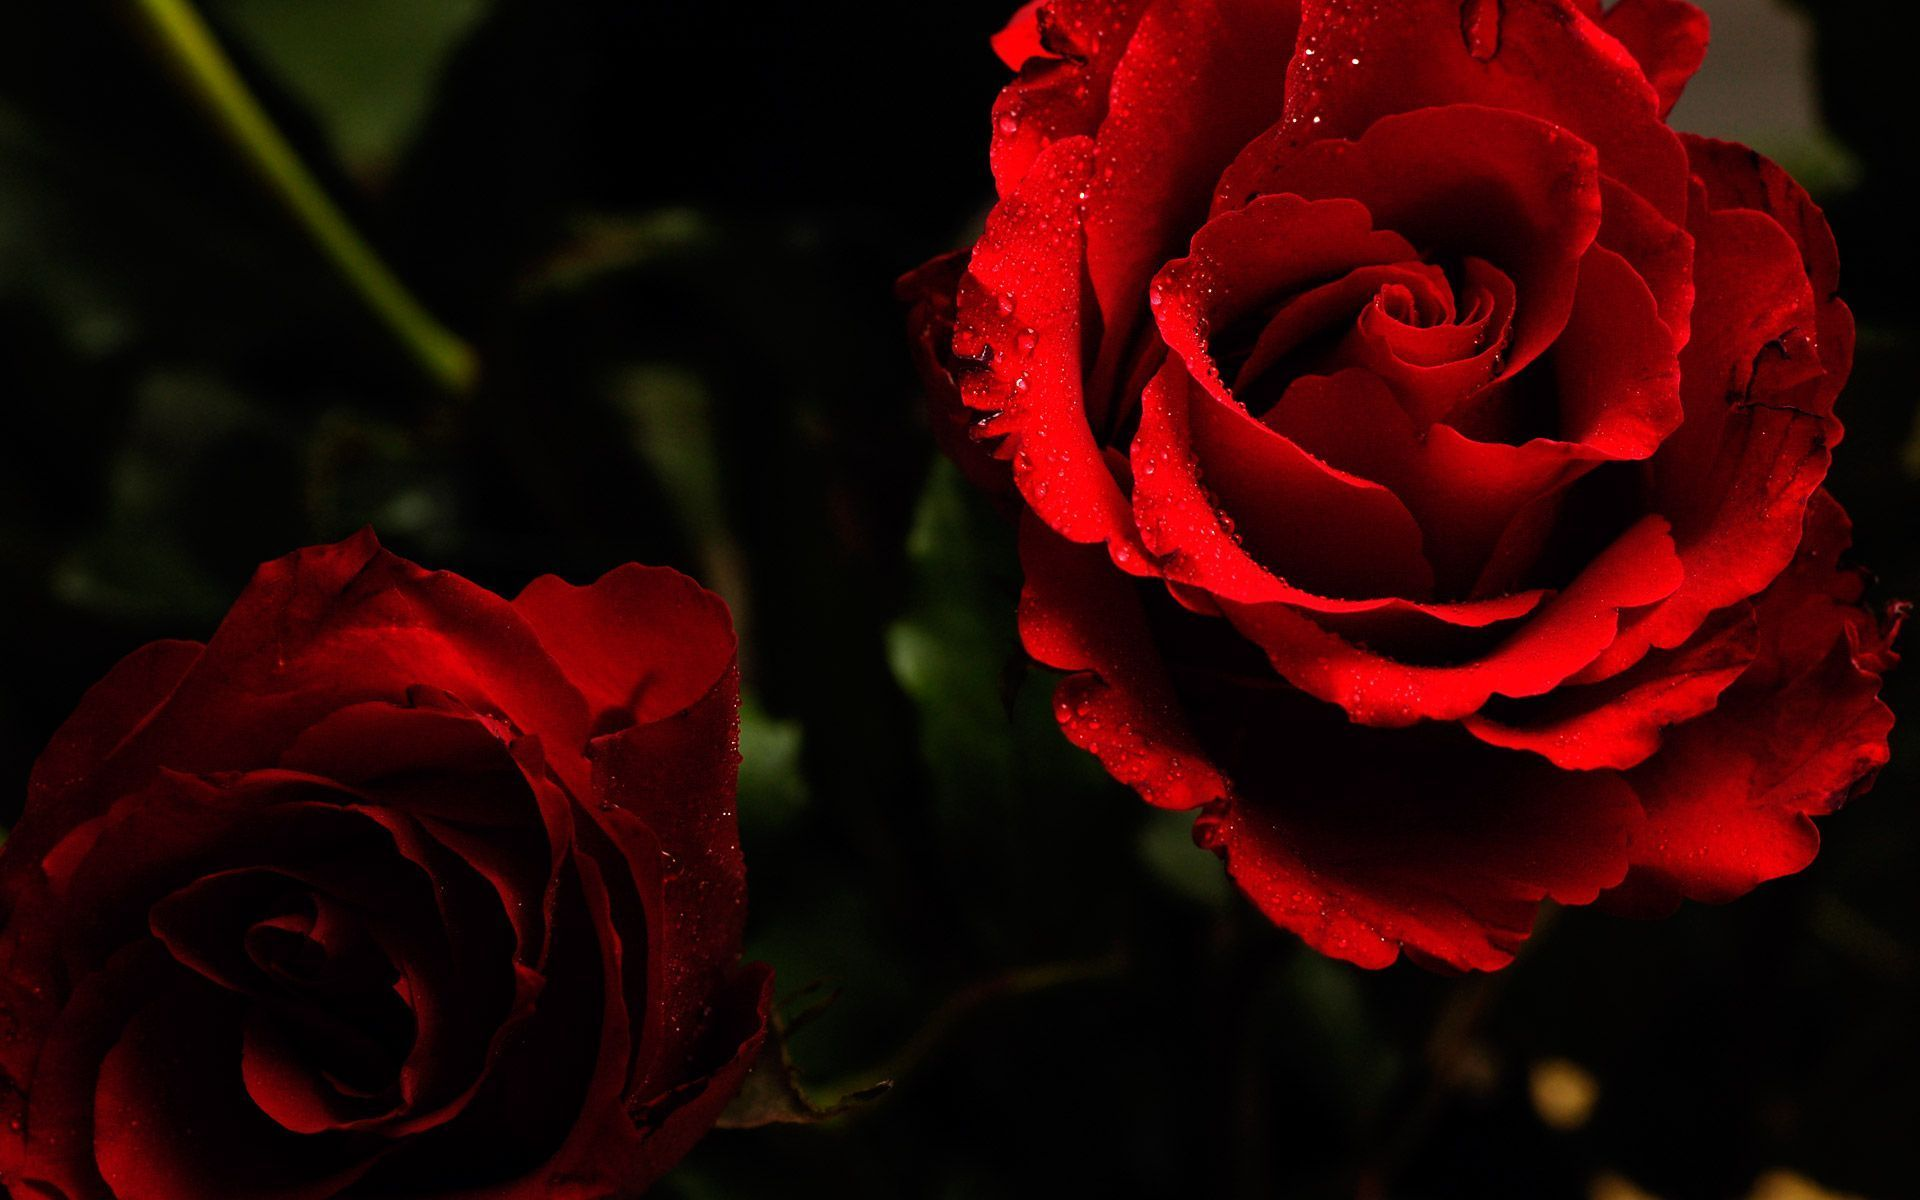 Roses Desktop Wallpaper Roses Images Download New 1920x1200